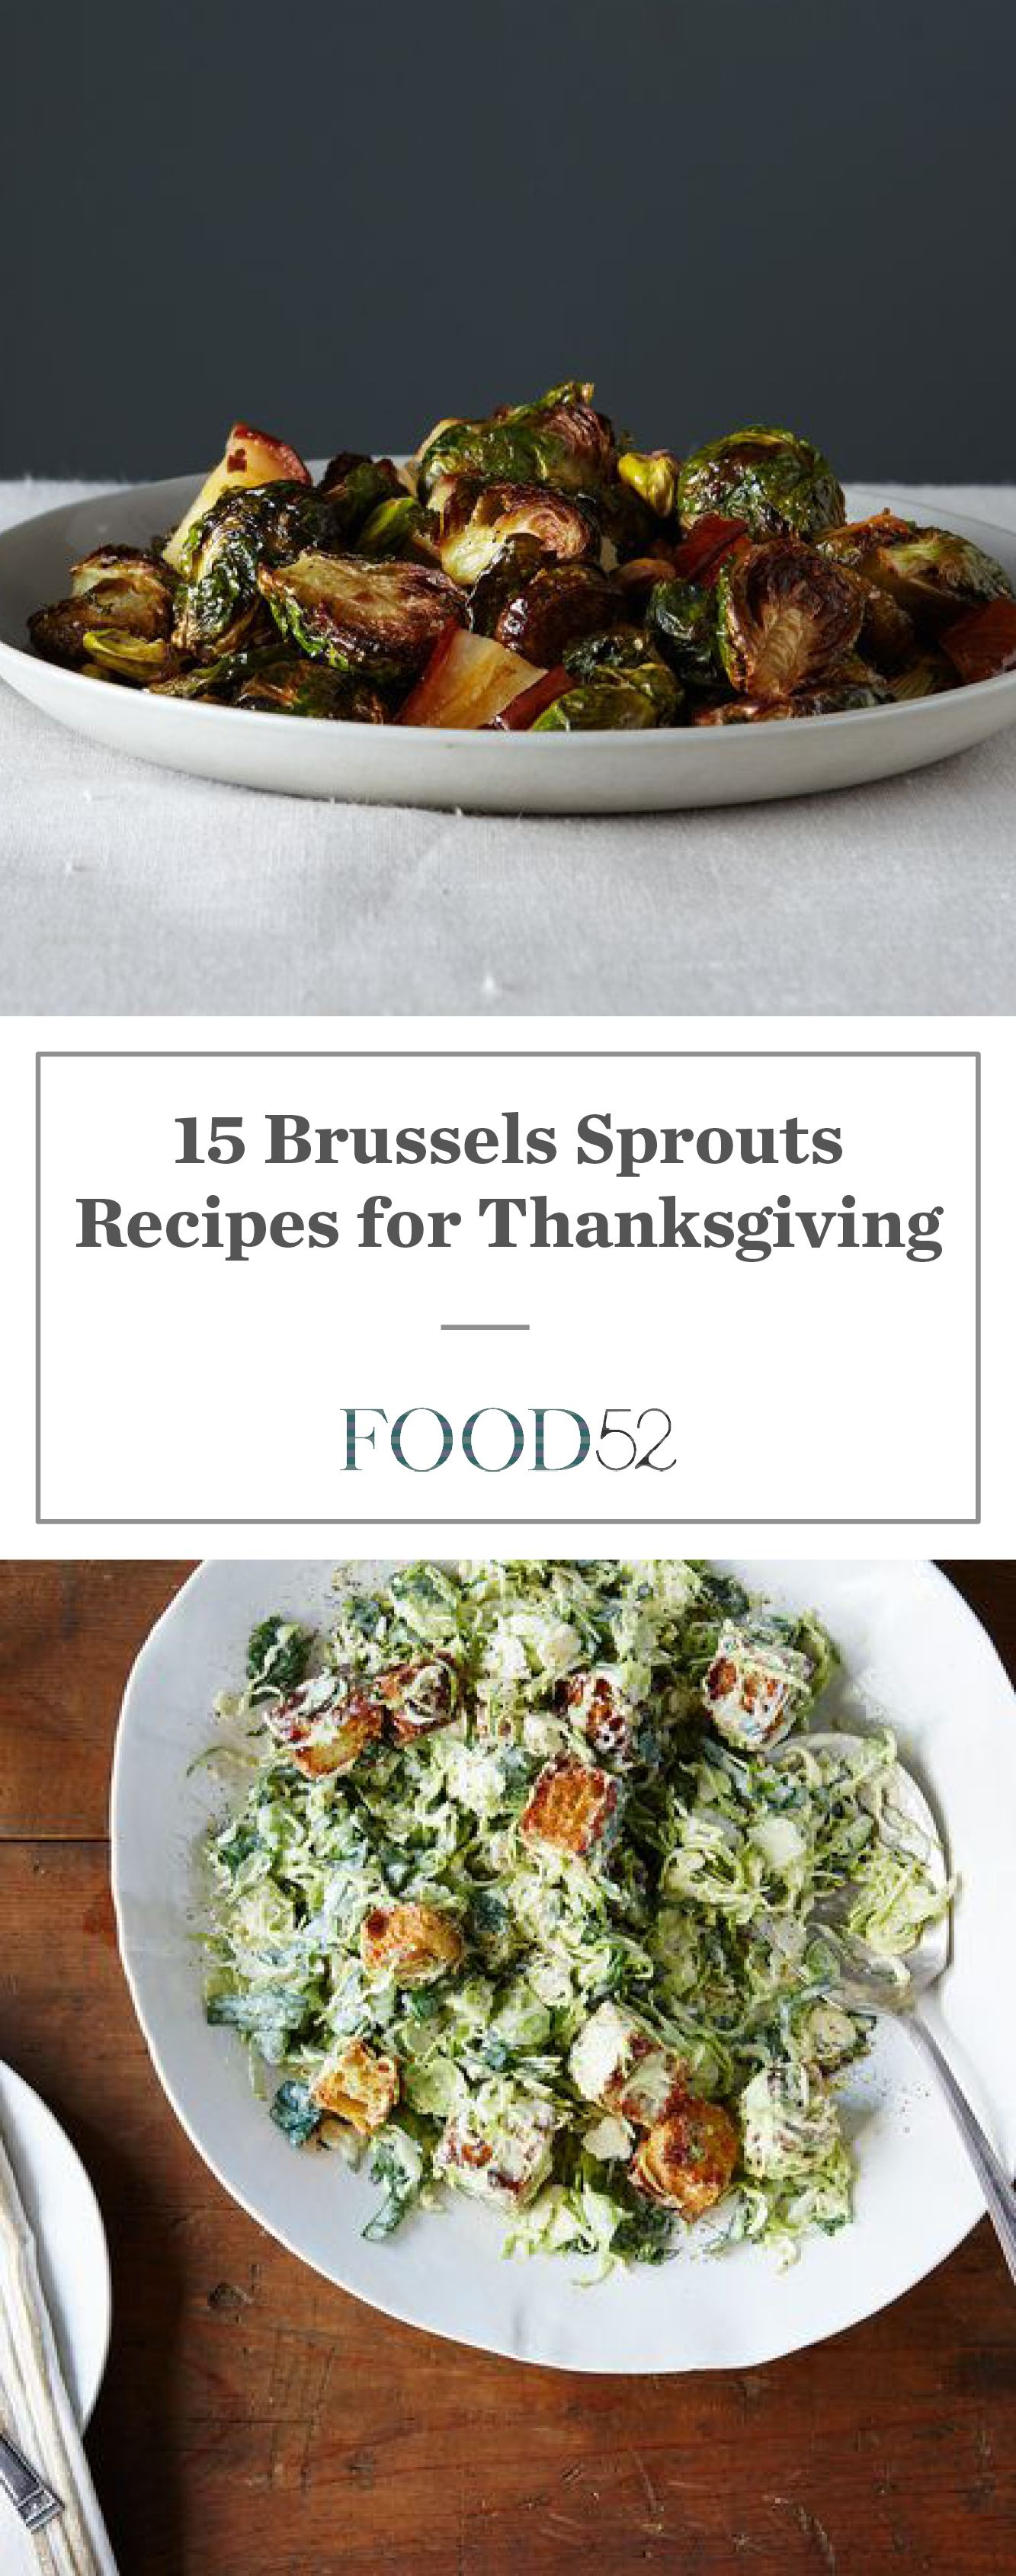 From Raw to Roasted 15 Brussels Sprouts Recipes for